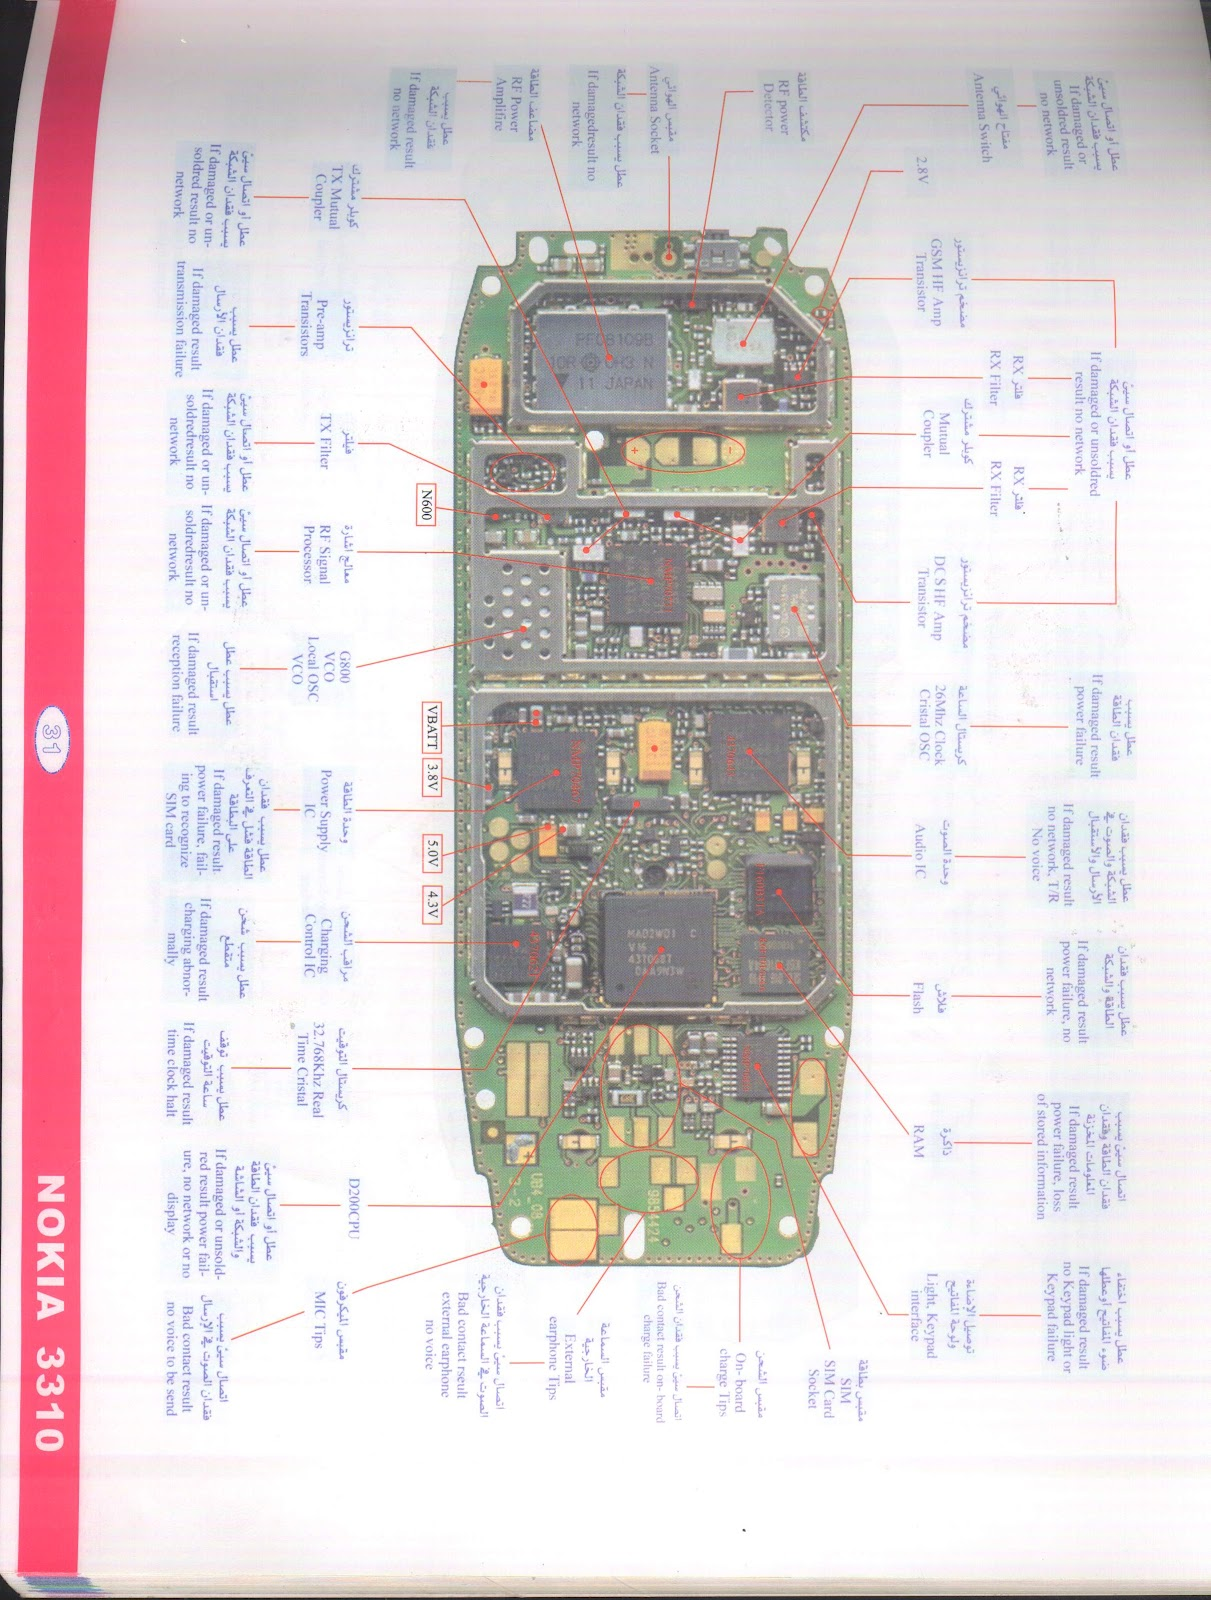 small resolution of nokia 3210 circuit board details